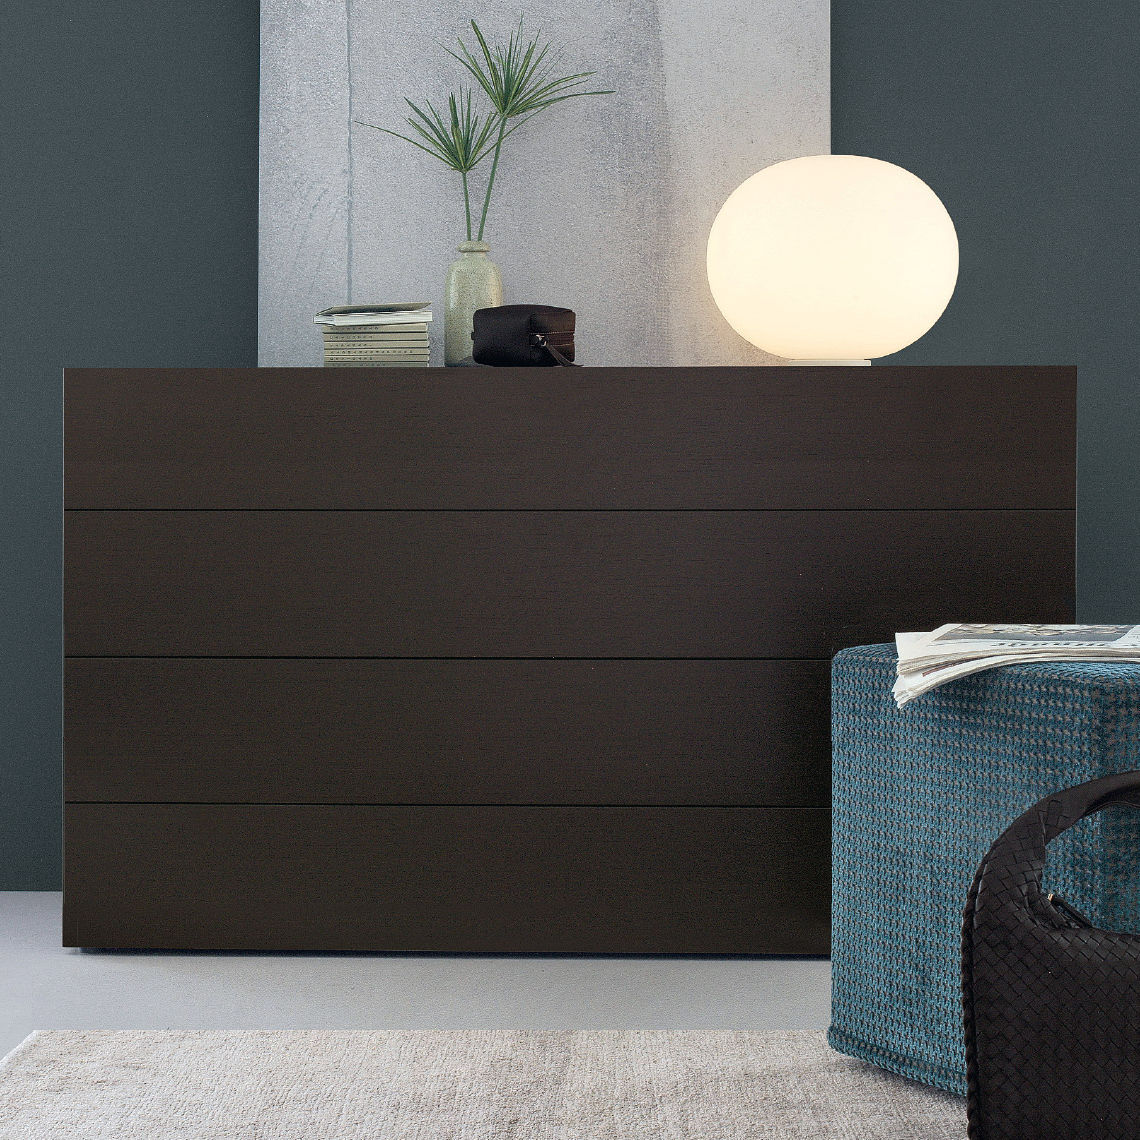 Contemporary chest of drawers   wooden   lacquered wood   black   NAP. Contemporary chest of drawers   wooden   lacquered wood   black